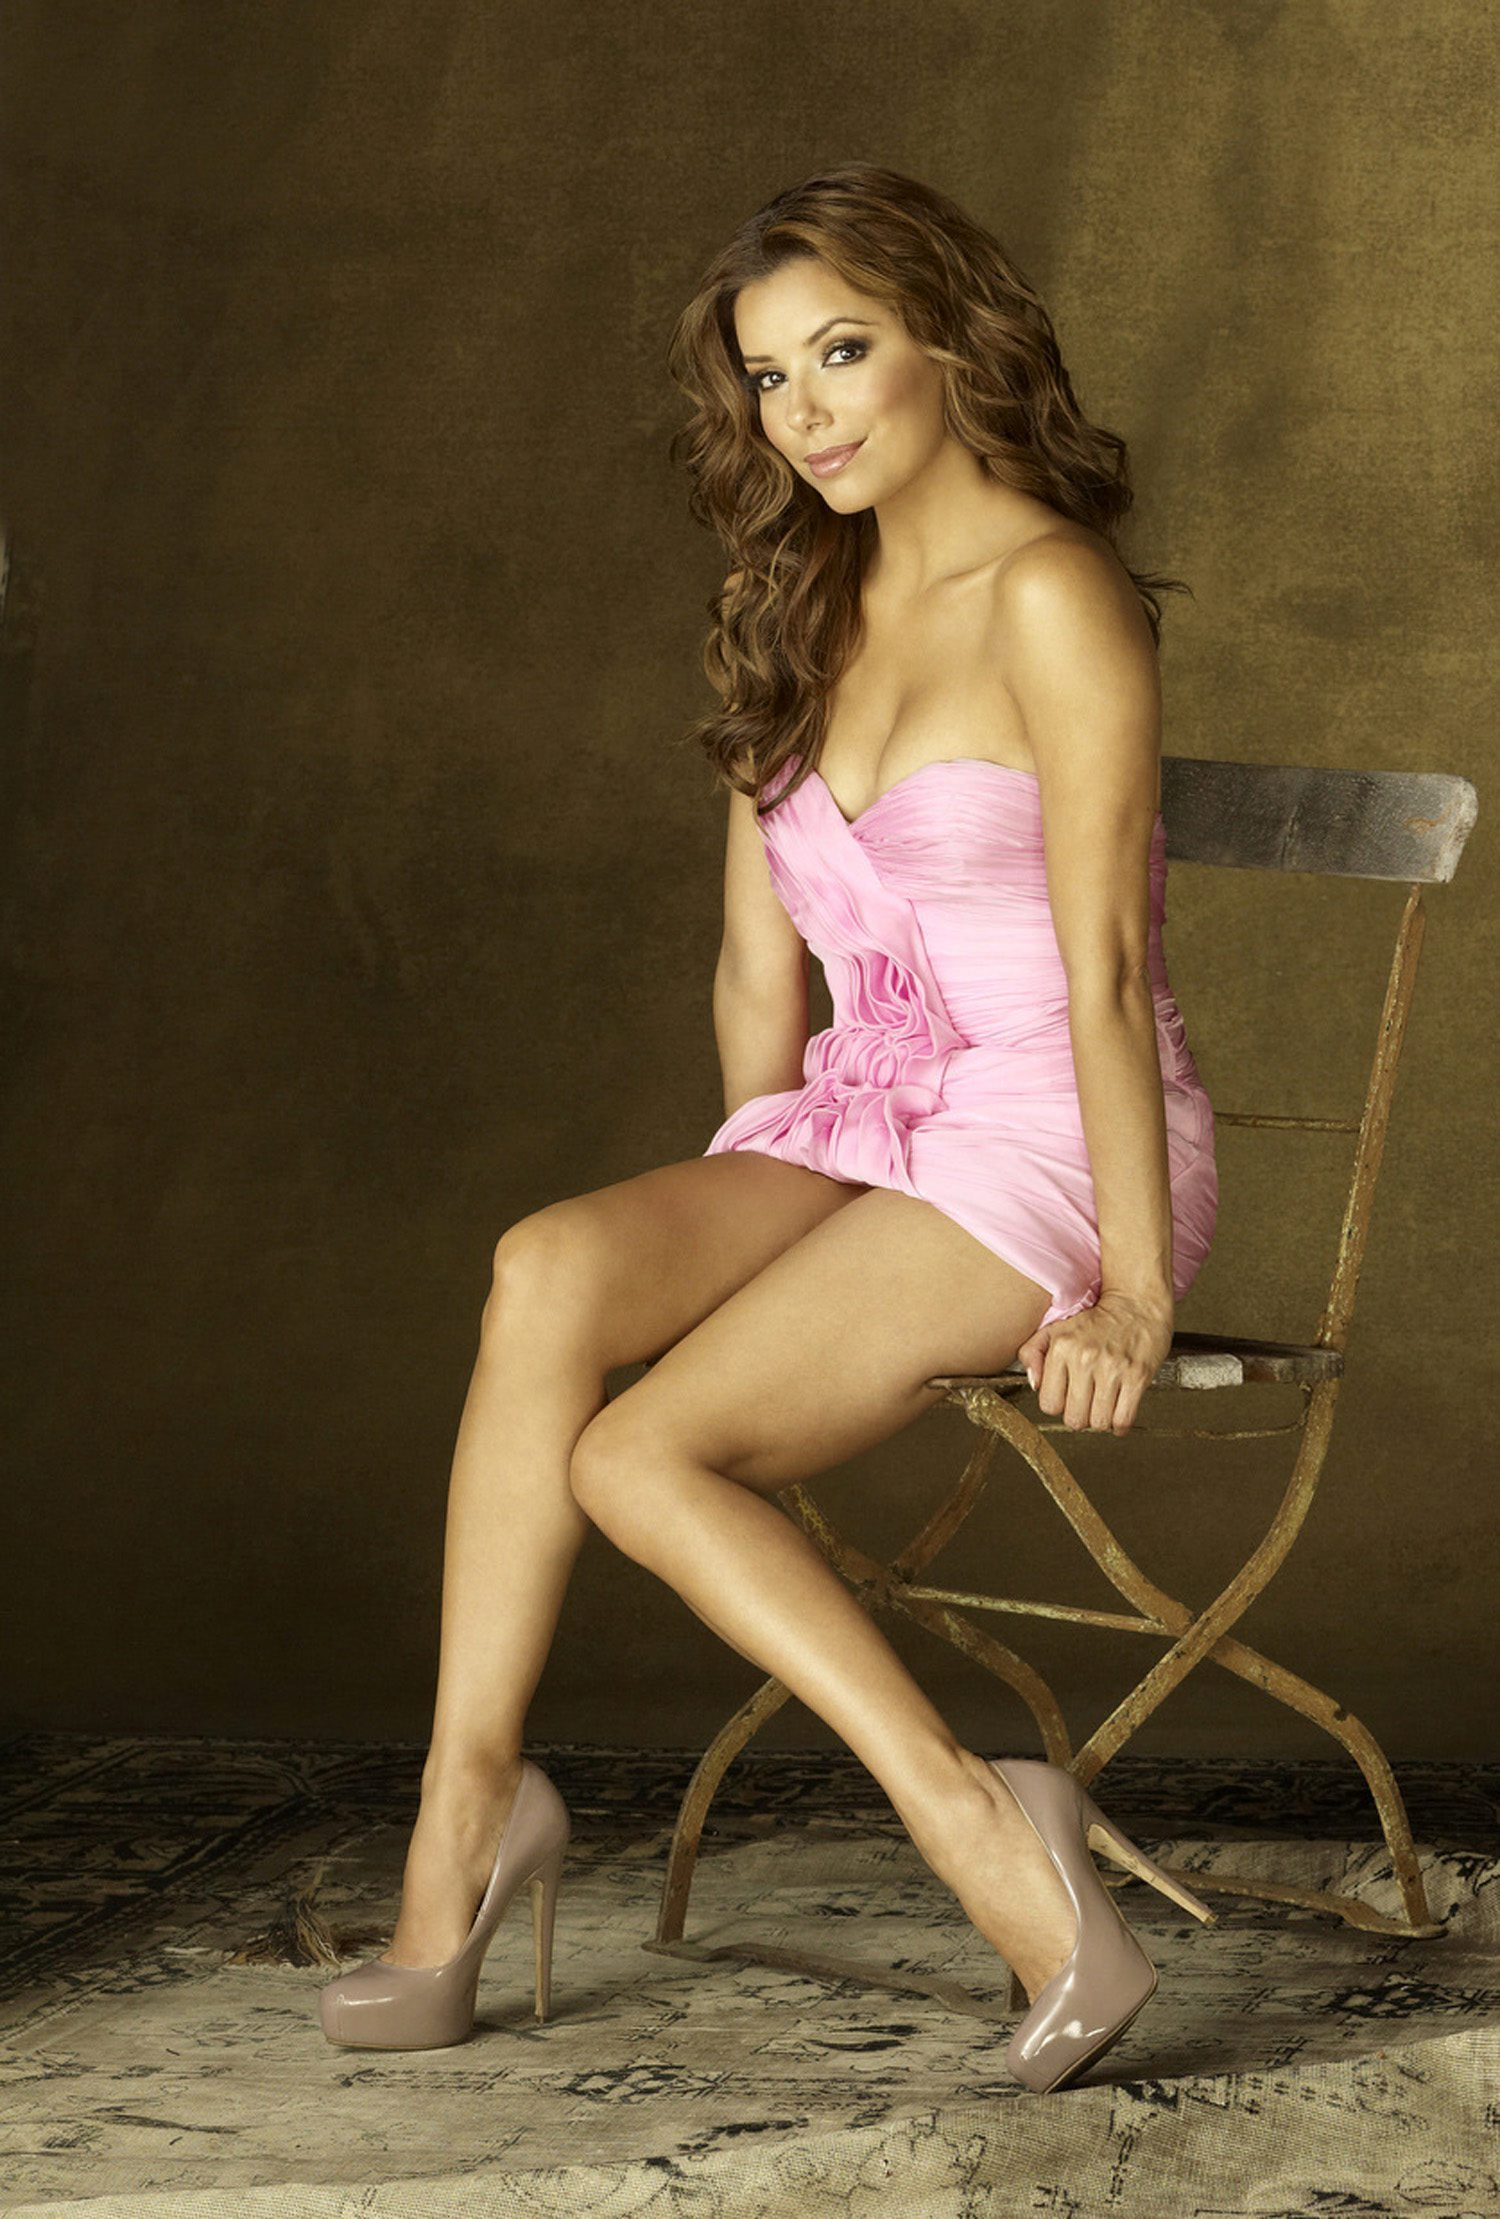 Desperate housewives eva longoria having sex on a table